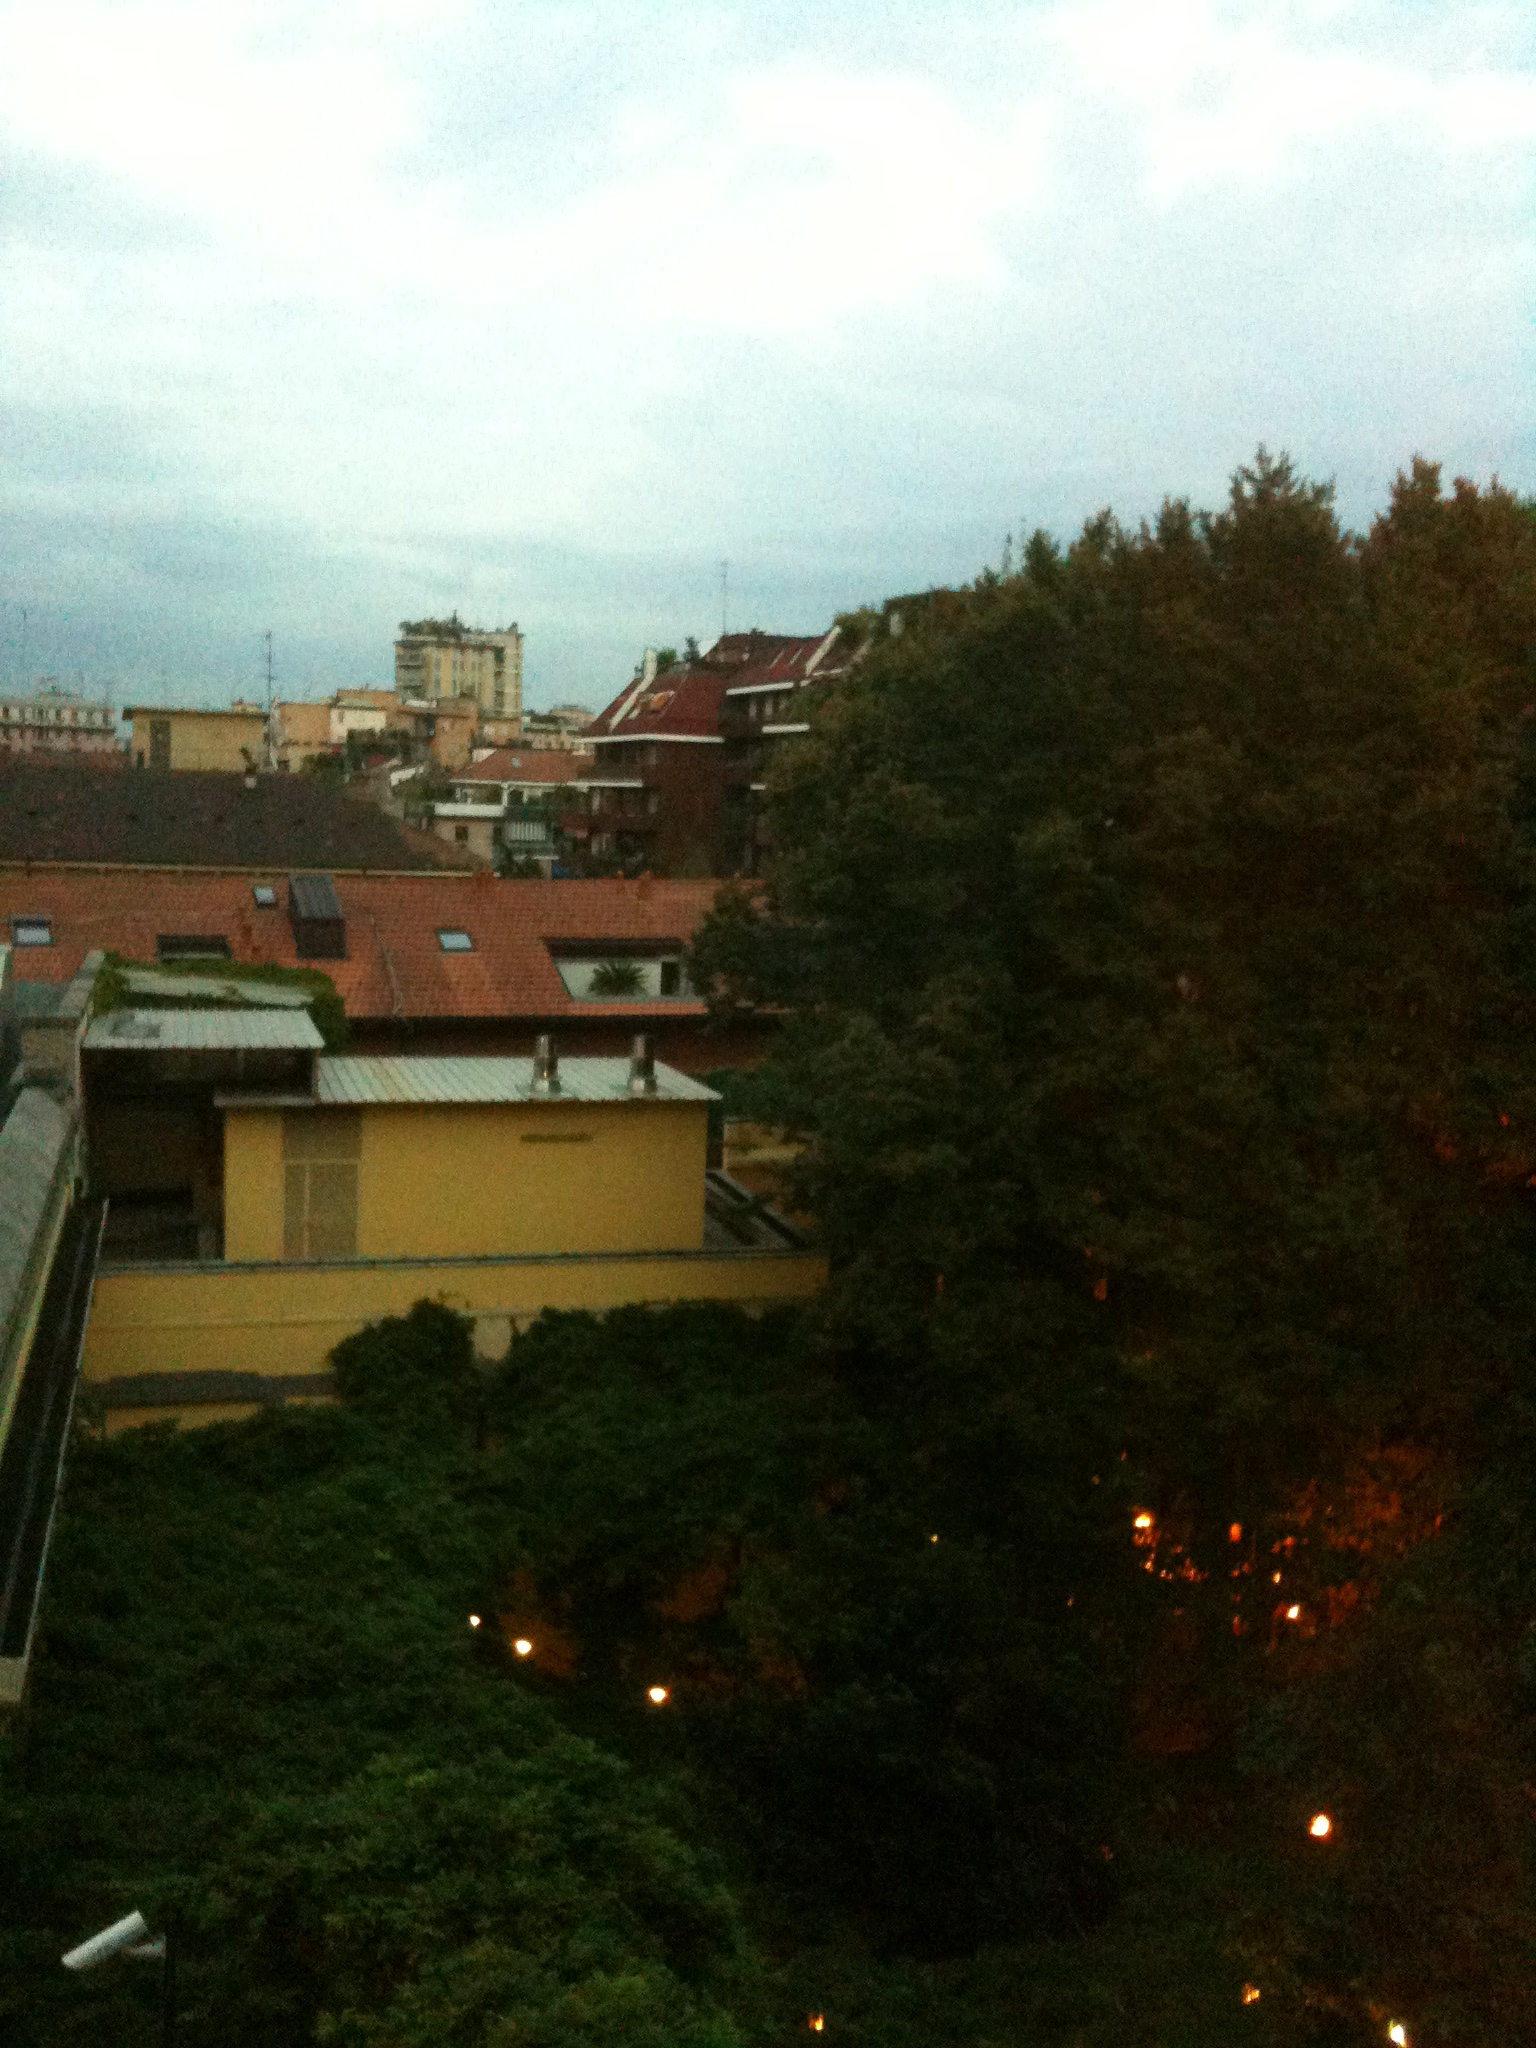 View in Milan